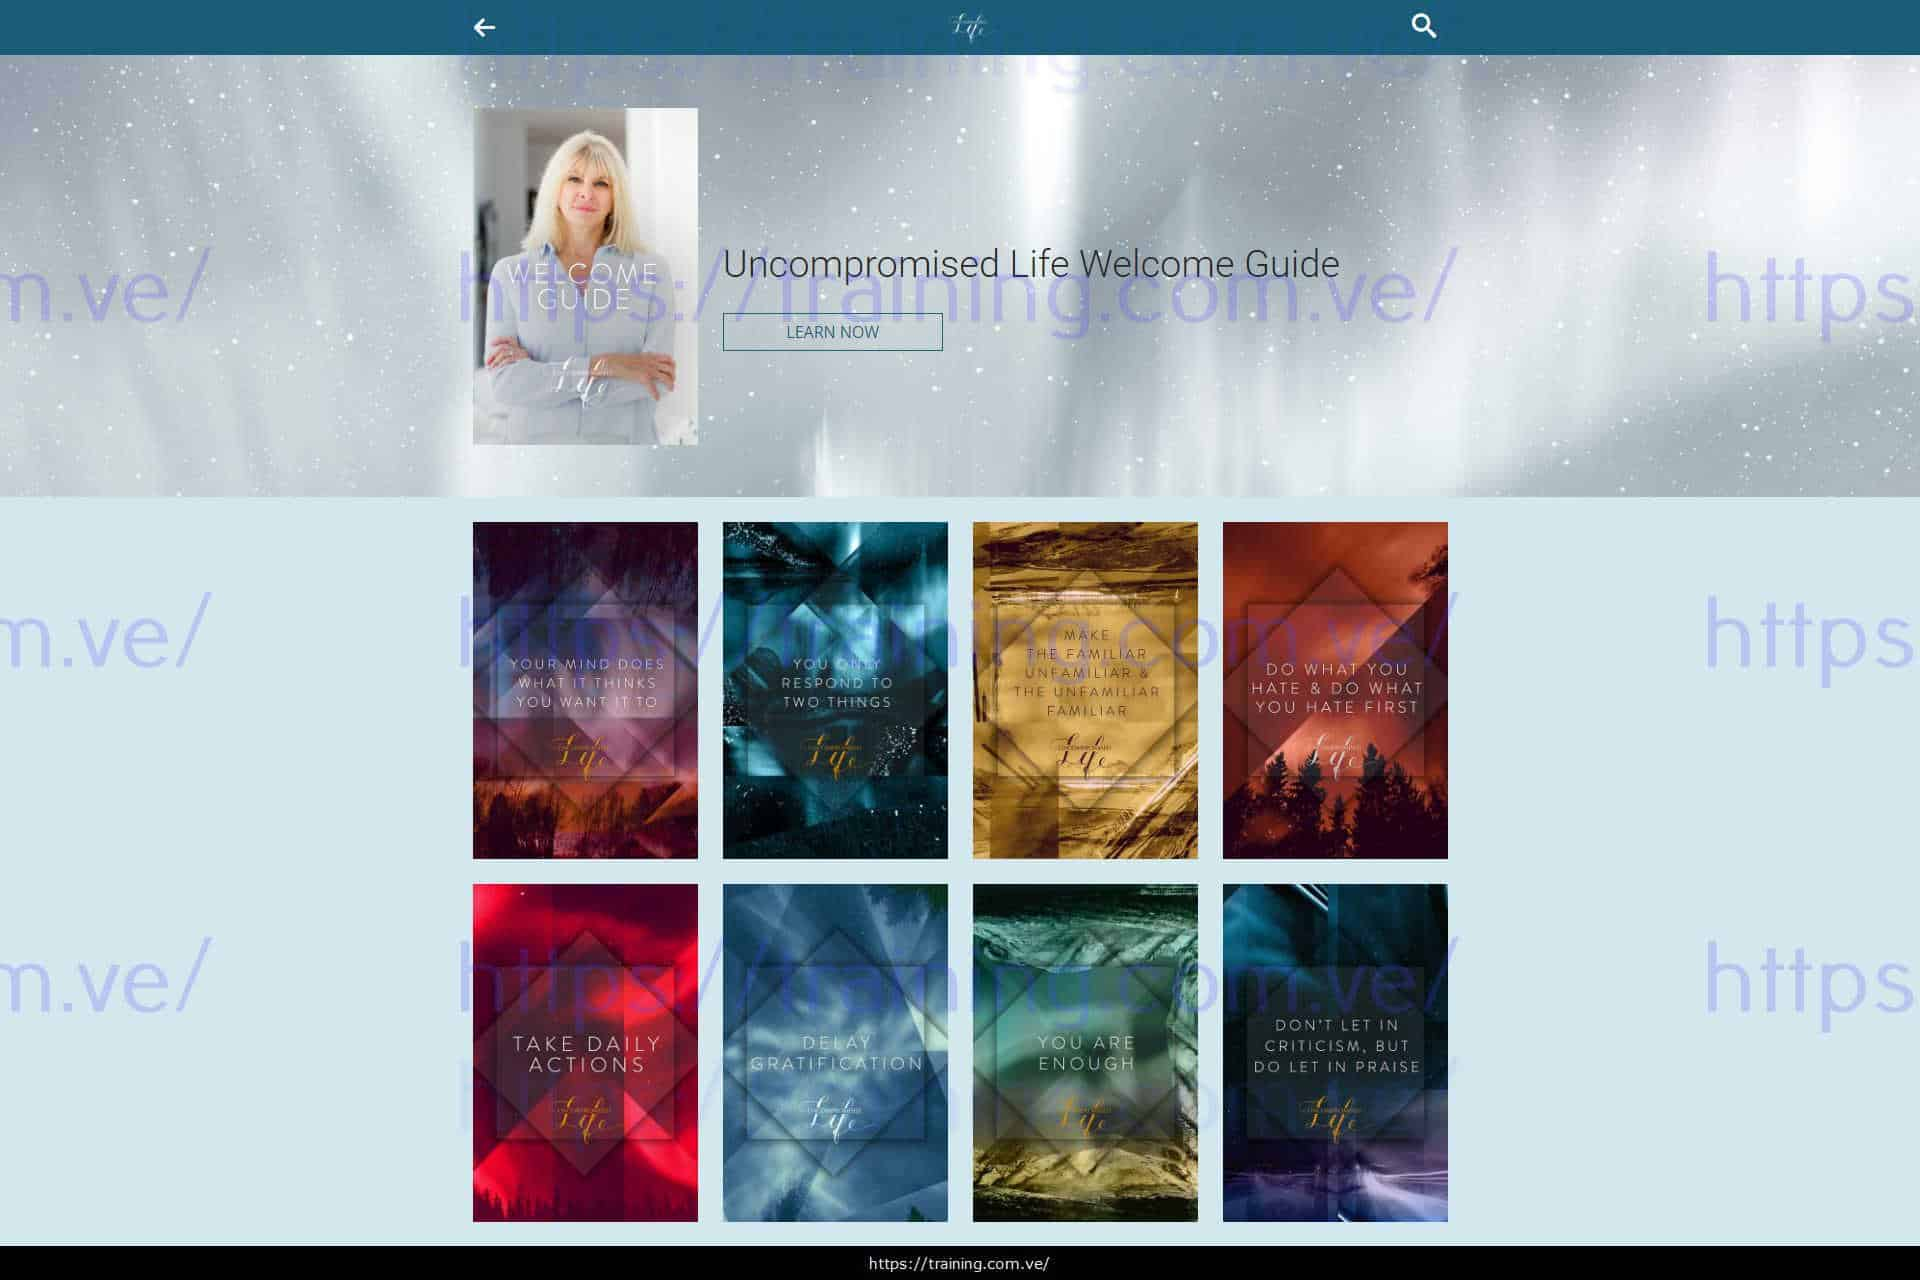 Uncompromised Life by Marisa Peer from Mindvalley Download